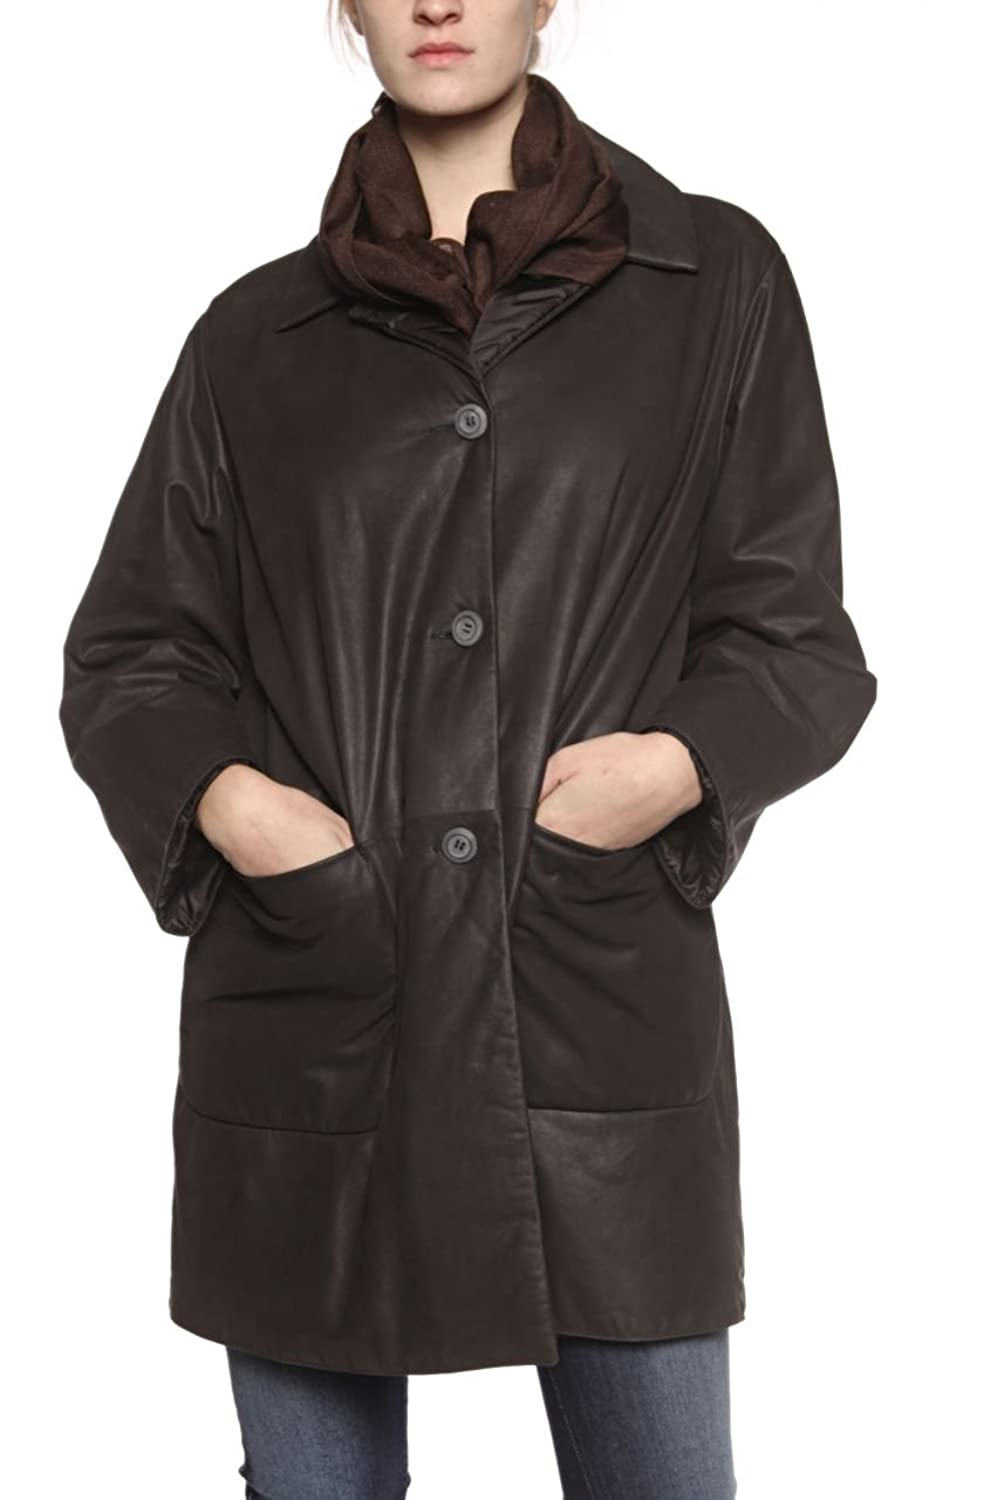 Foreight Collection Damen Jacke Ledermantel Wendemantel DOUBLE FACE, Farbe: Schwarz